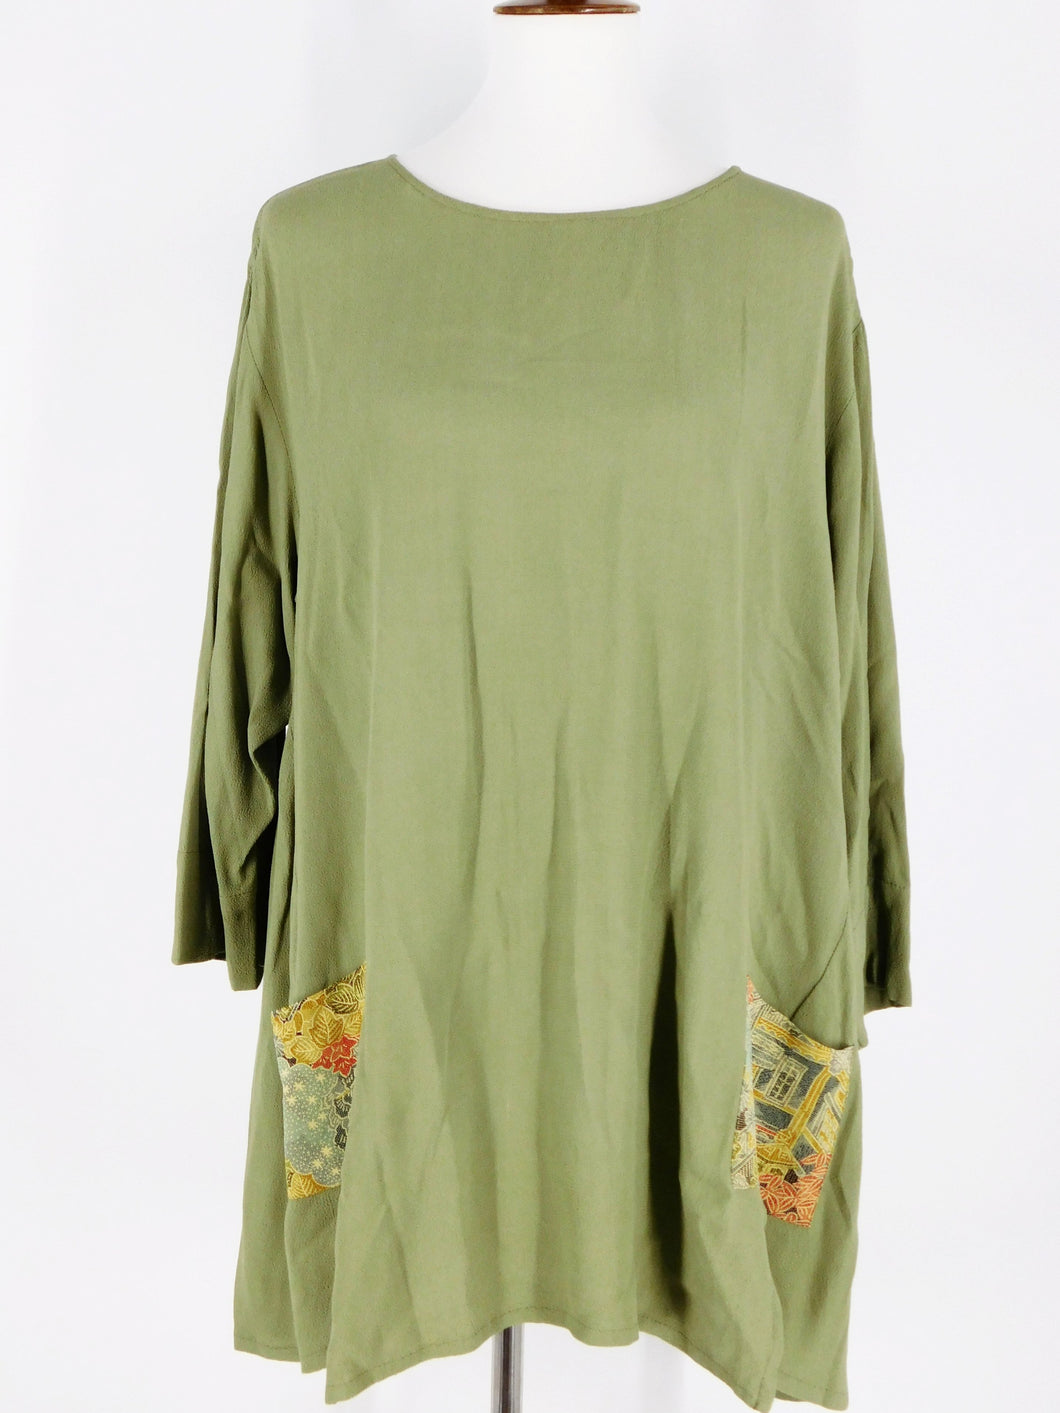 One-Of-A-Kind Assorted Kimono Silk Pocket Tunic - Sage - S/M - A